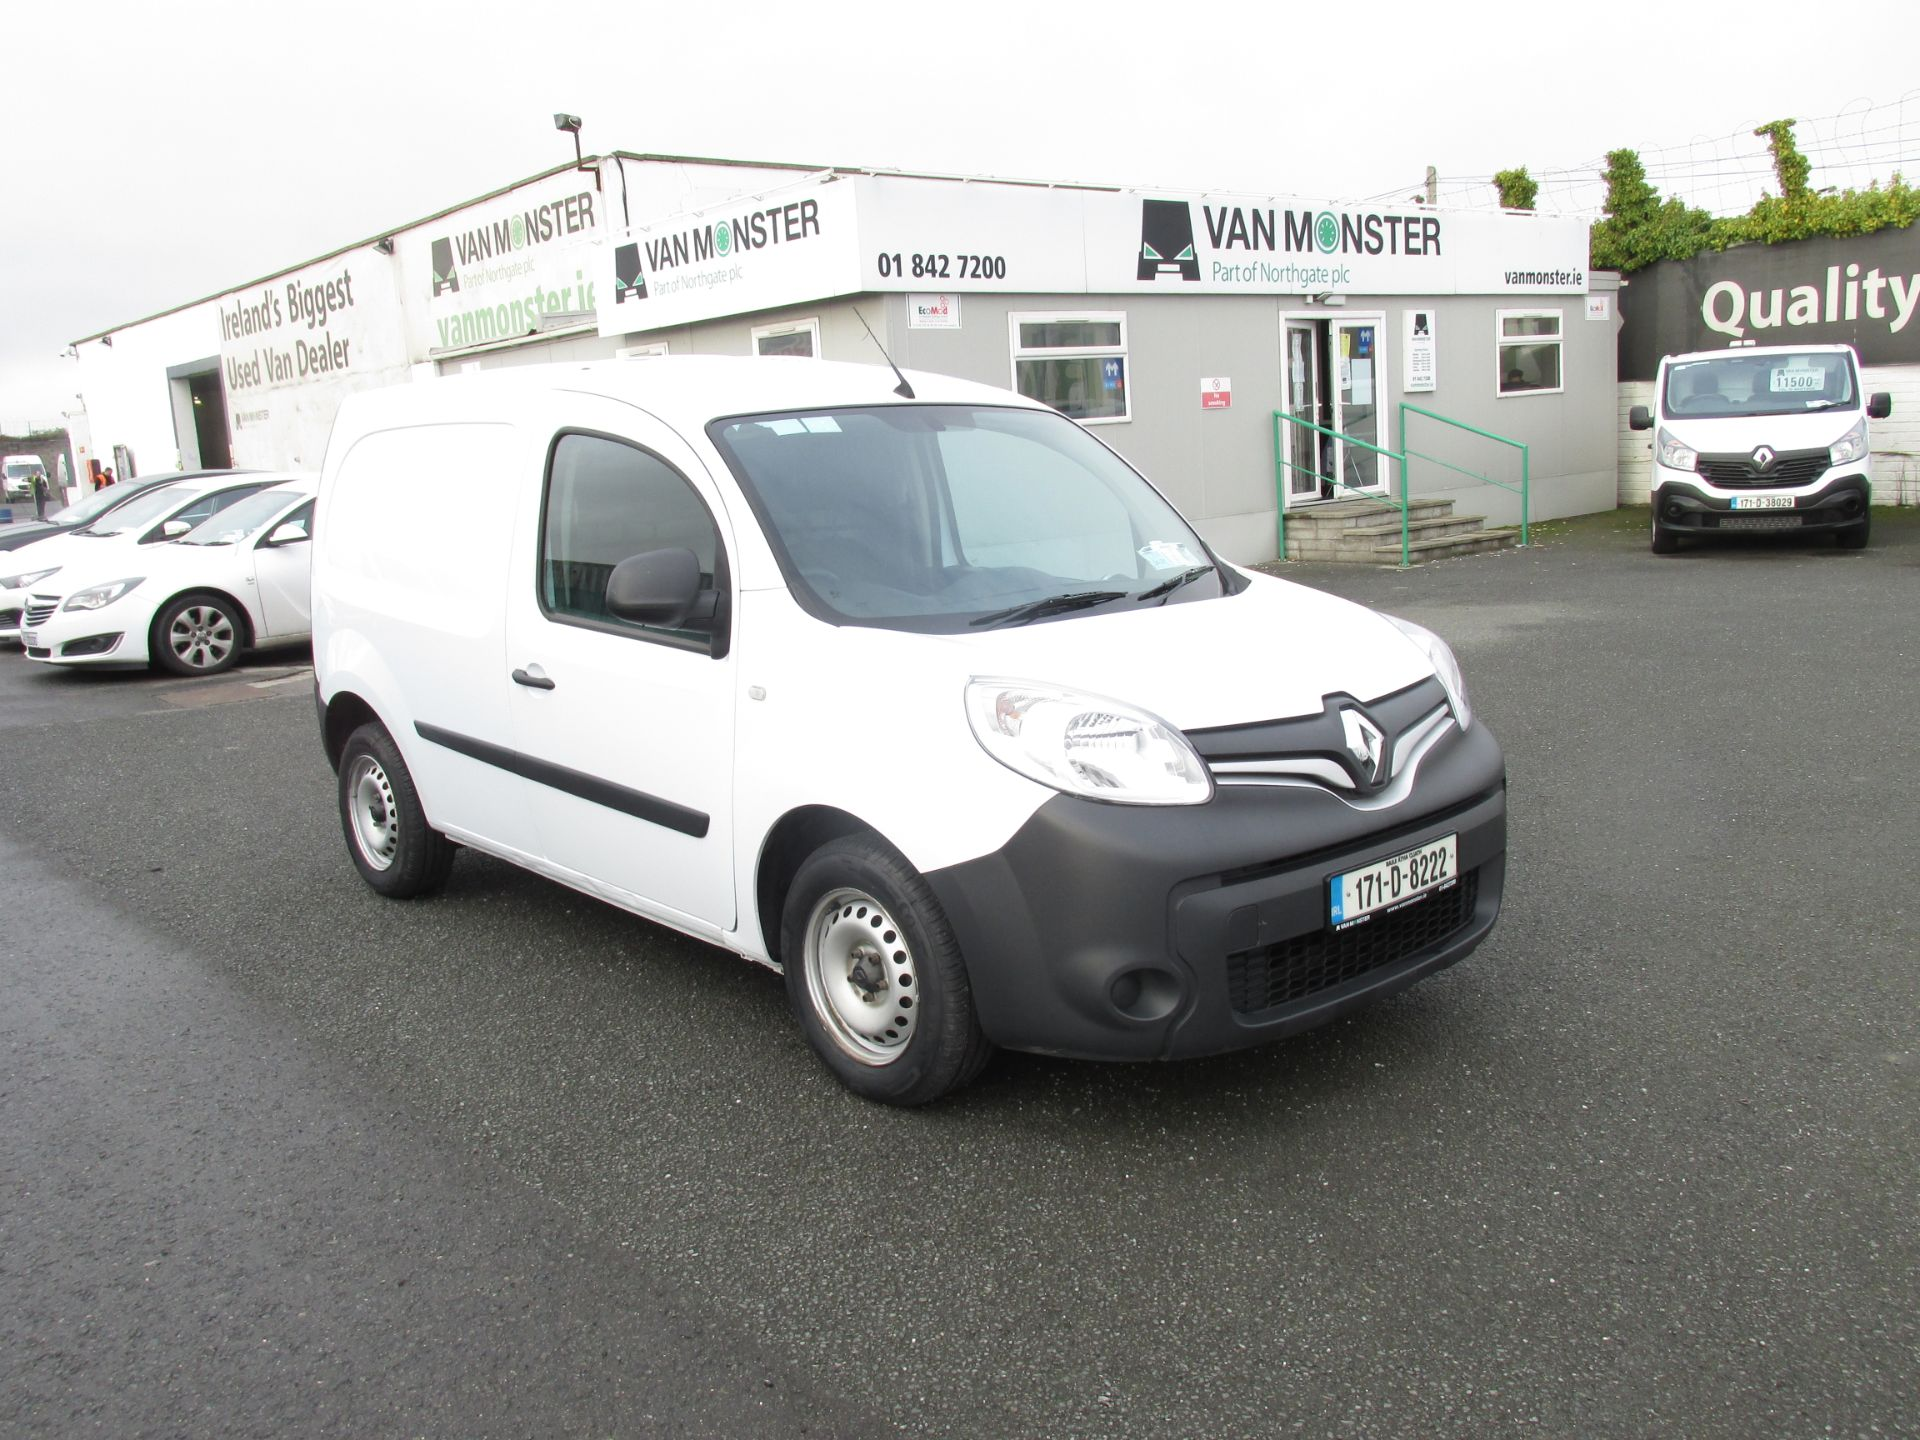 2017 Renault Kangoo ML19 ENERGY DCI 75 BUSINESS 2D click and collect call sales for more info (171D8222) Image 1